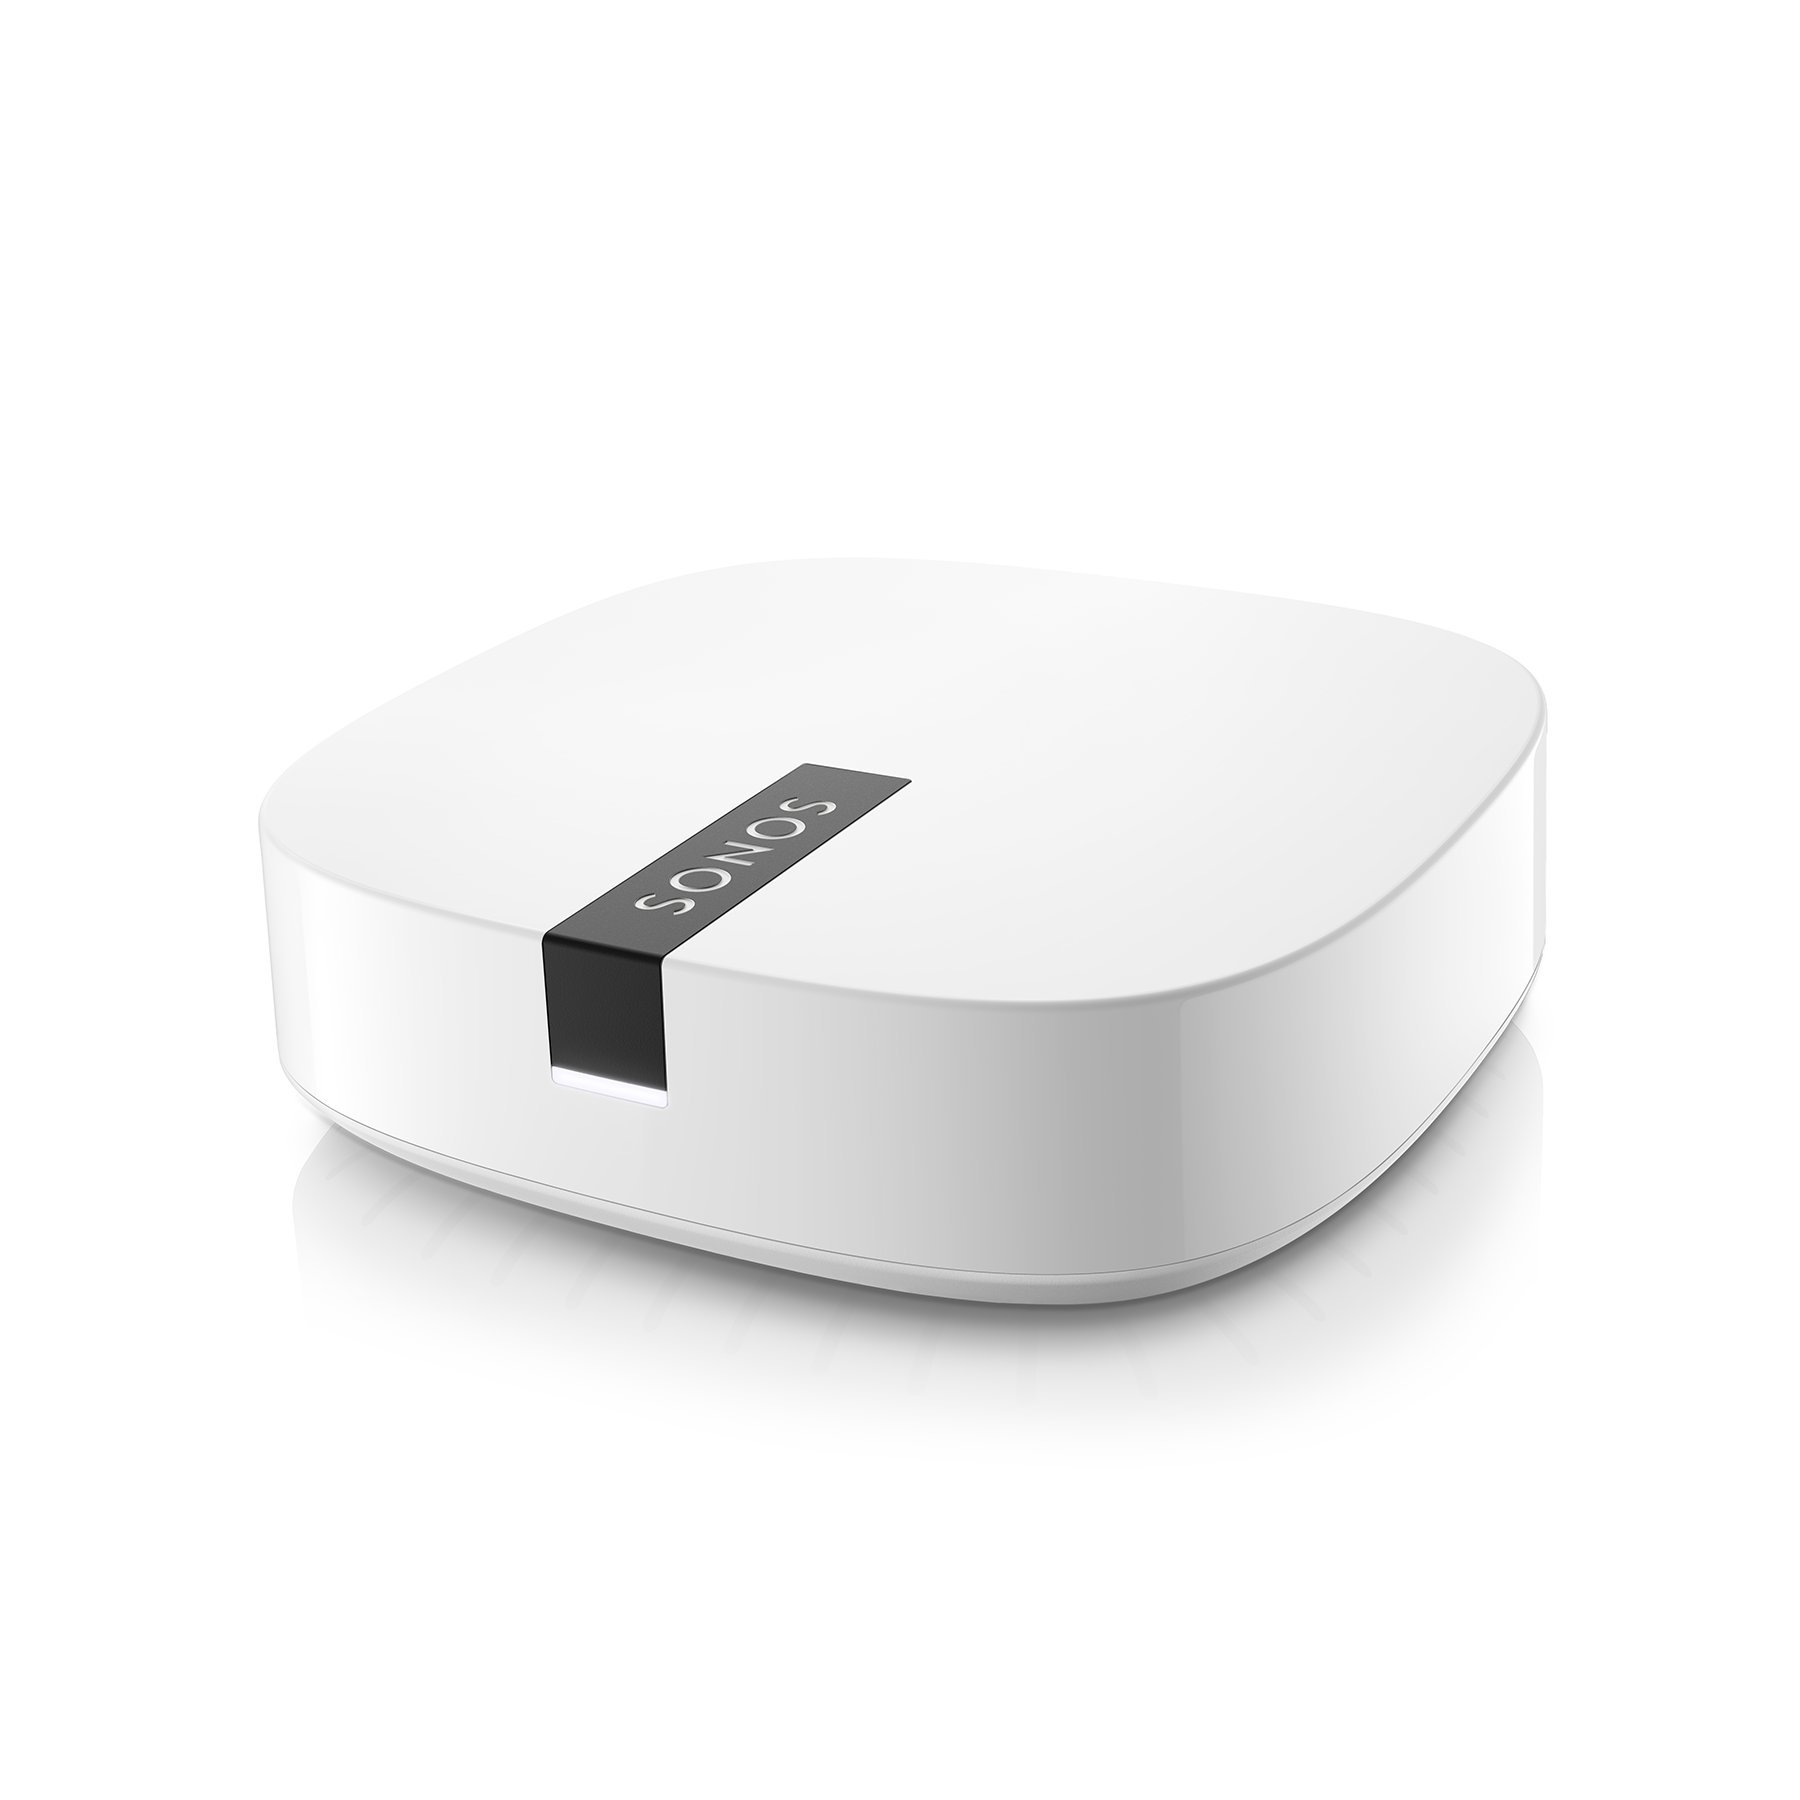 Sonos Boost - The WiFi extension for uninterrupted listening - White by Sonos